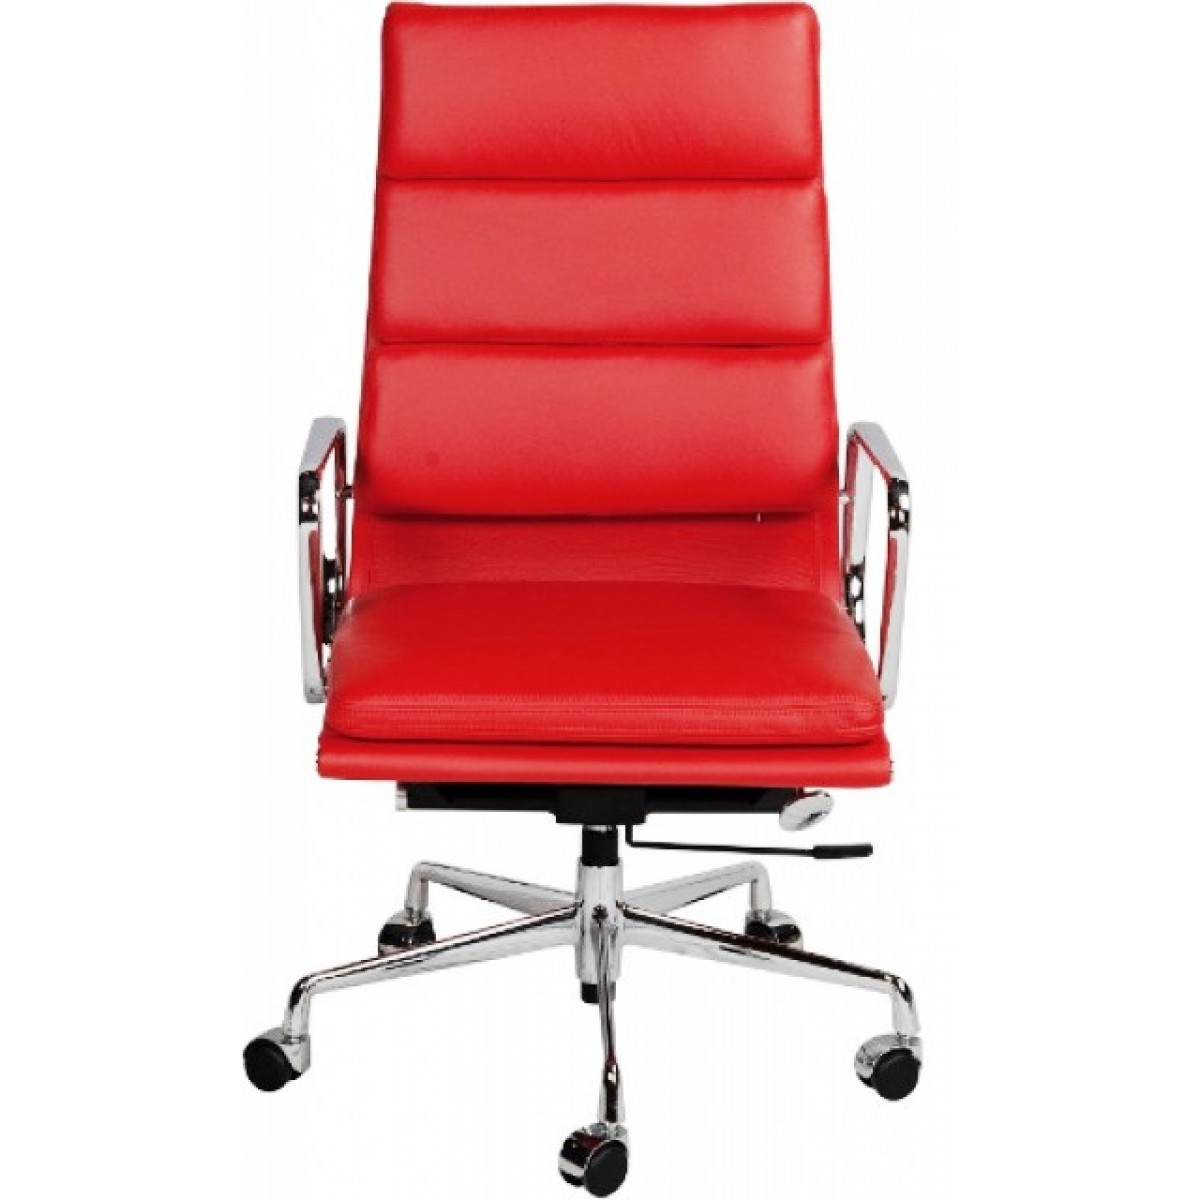 ea219 eames style office chair high back soft pad red leather replica. Black Bedroom Furniture Sets. Home Design Ideas